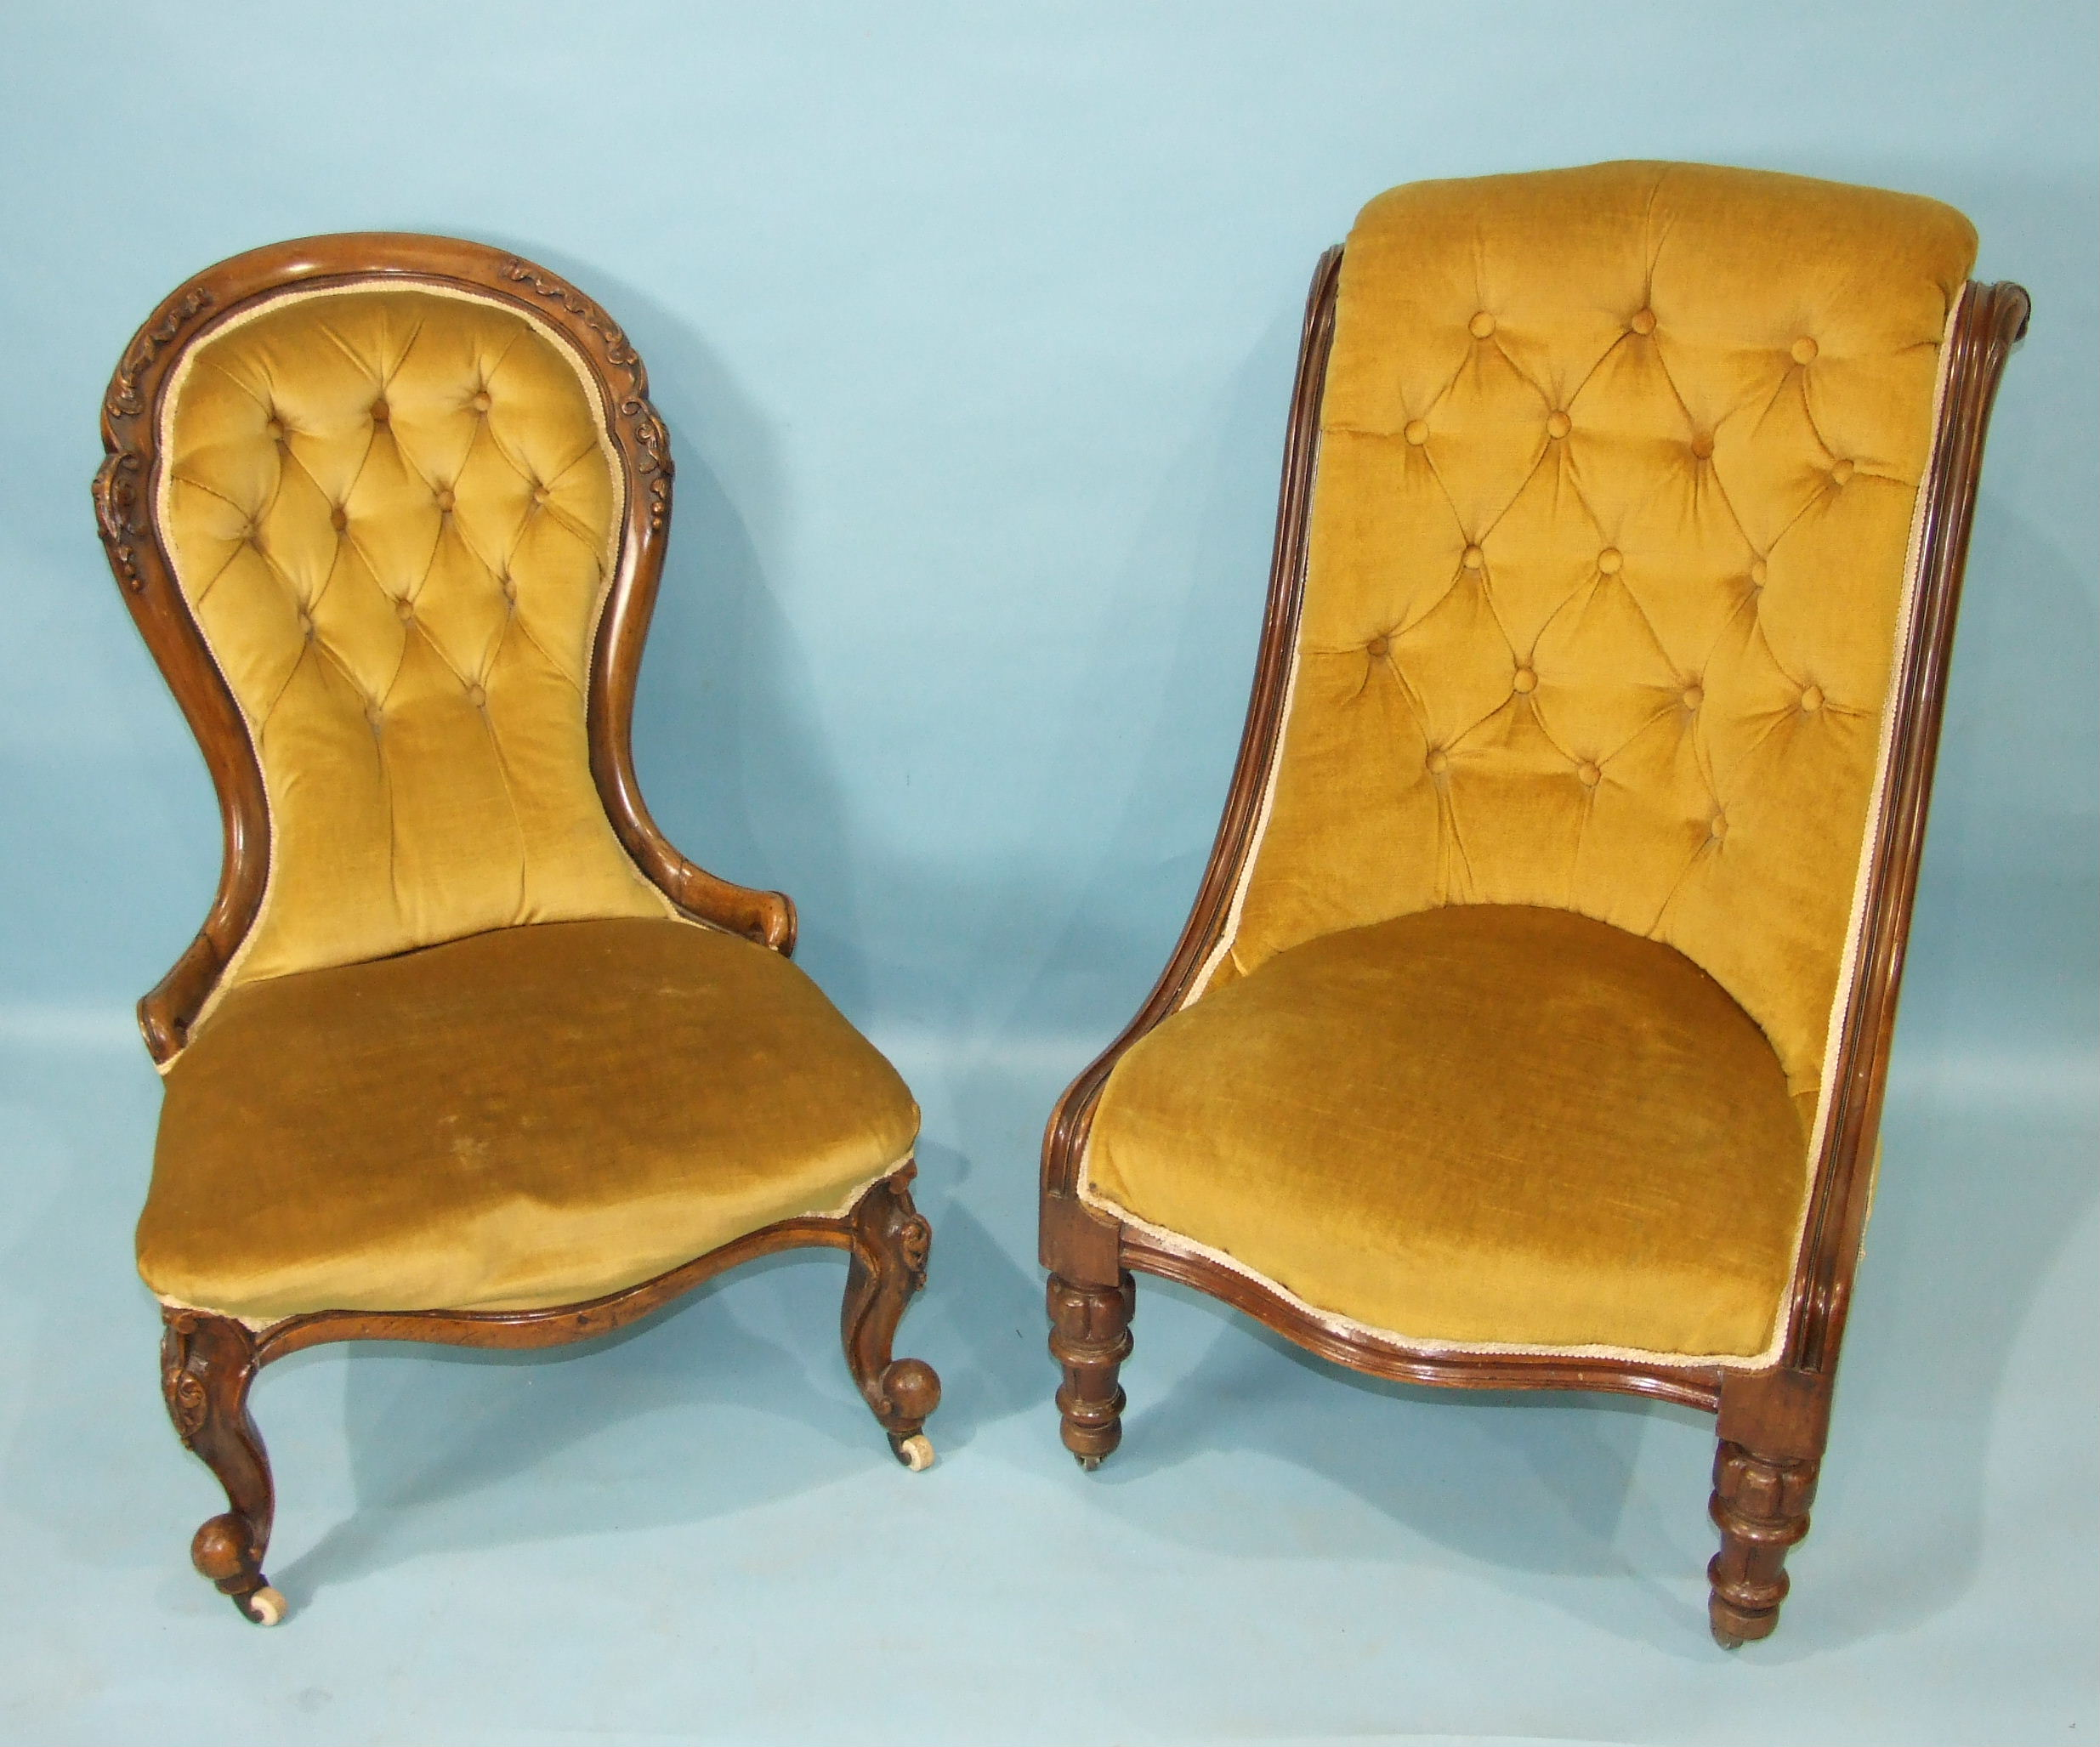 A Victorian mahogany low salon chair with buttoned back and serpentine seat, on carved and turned